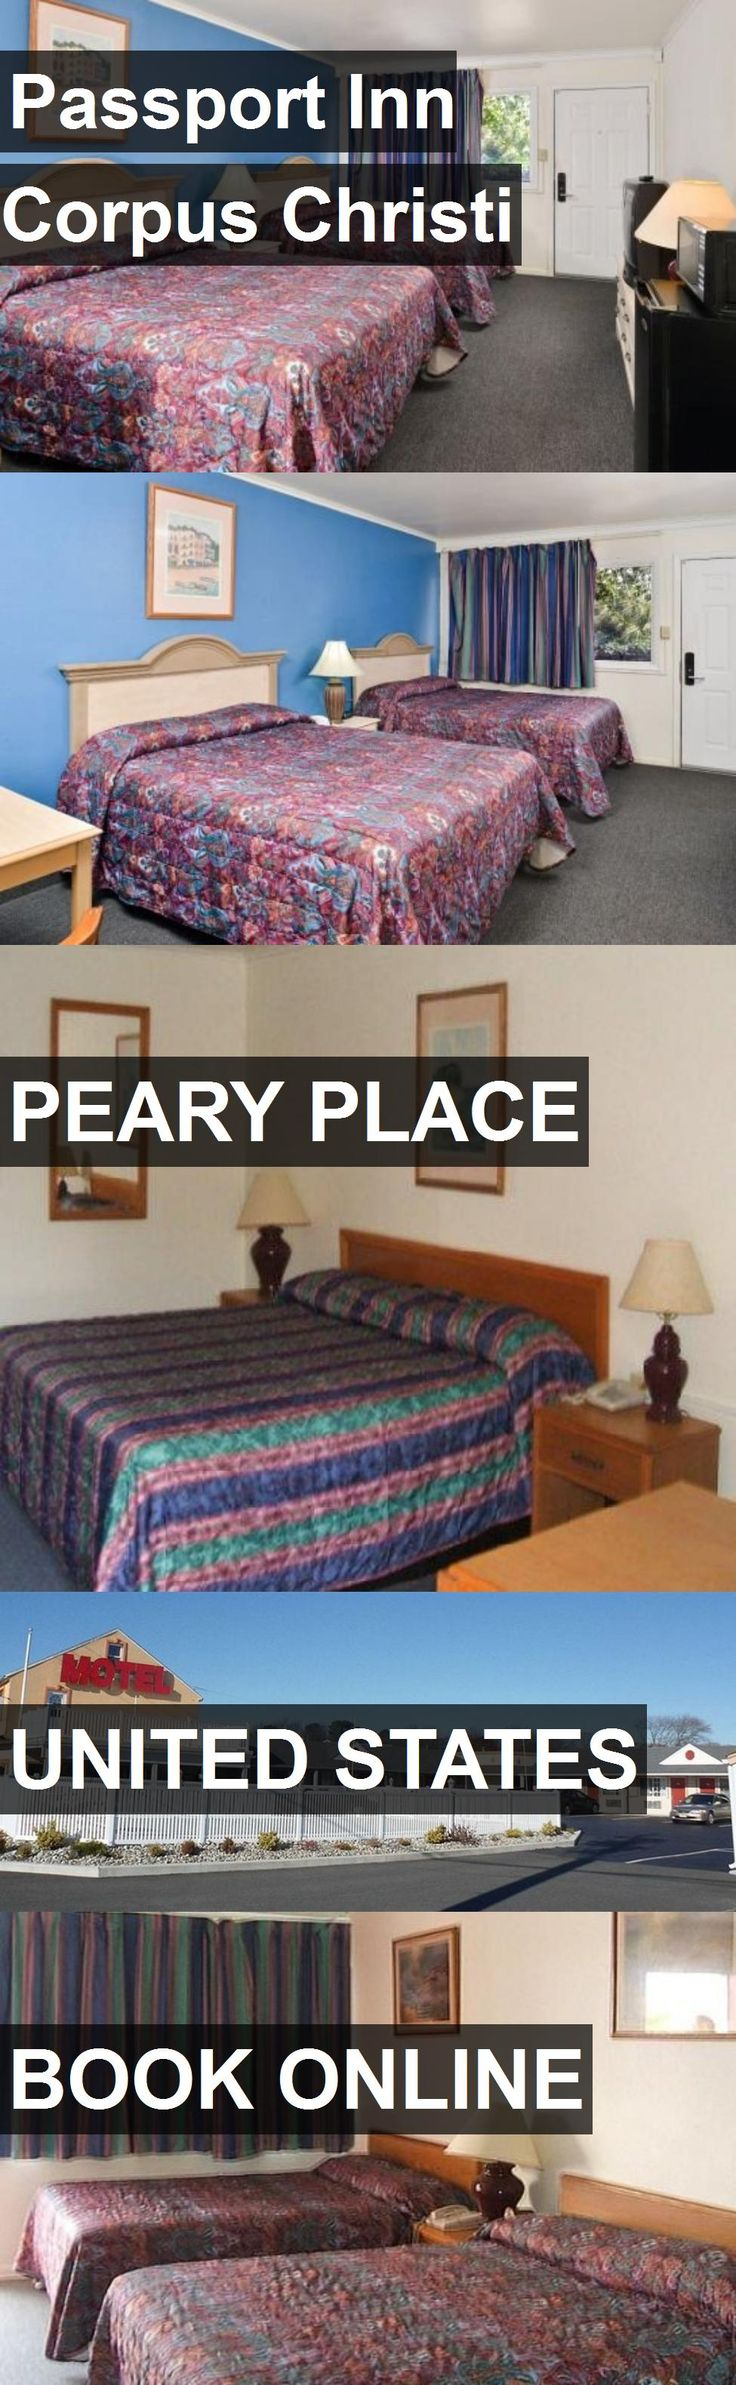 Hotel Passport Inn Corpus Christi in Peary Place, United States. For more information, photos, reviews and best prices please follow the link. #UnitedStates #PearyPlace #travel #vacation #hotel